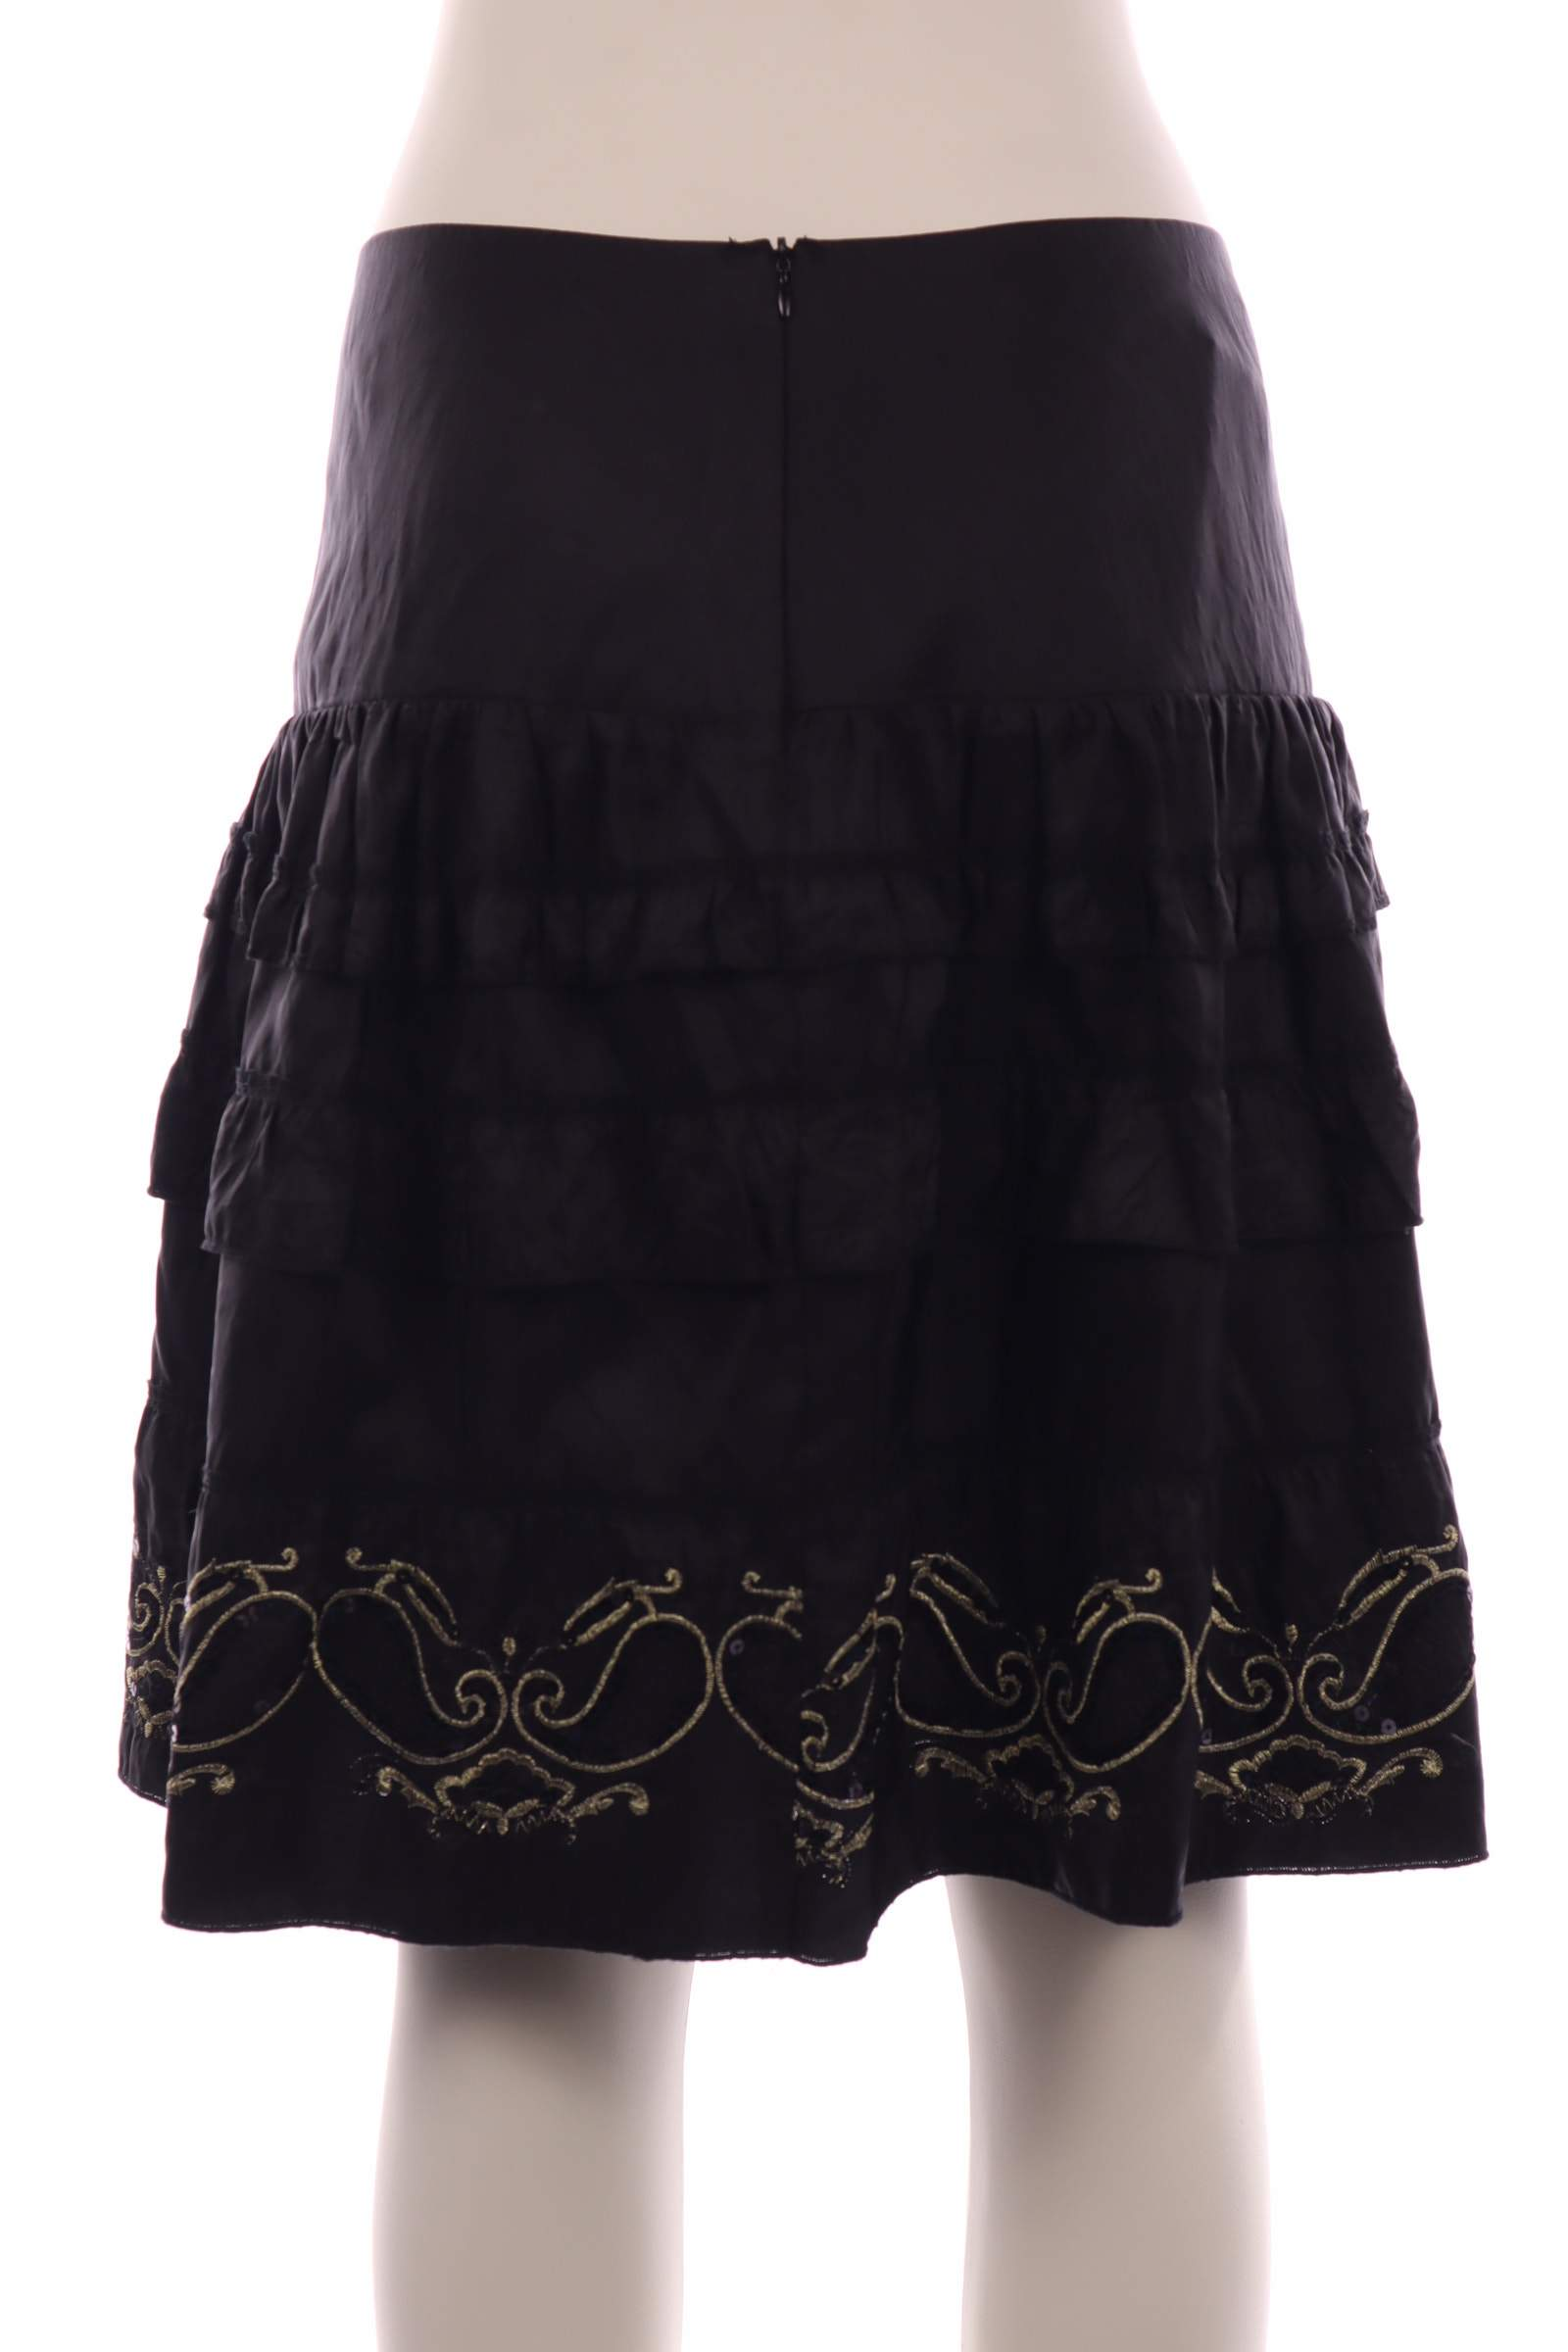 just xmx Black Skirt - upty.store